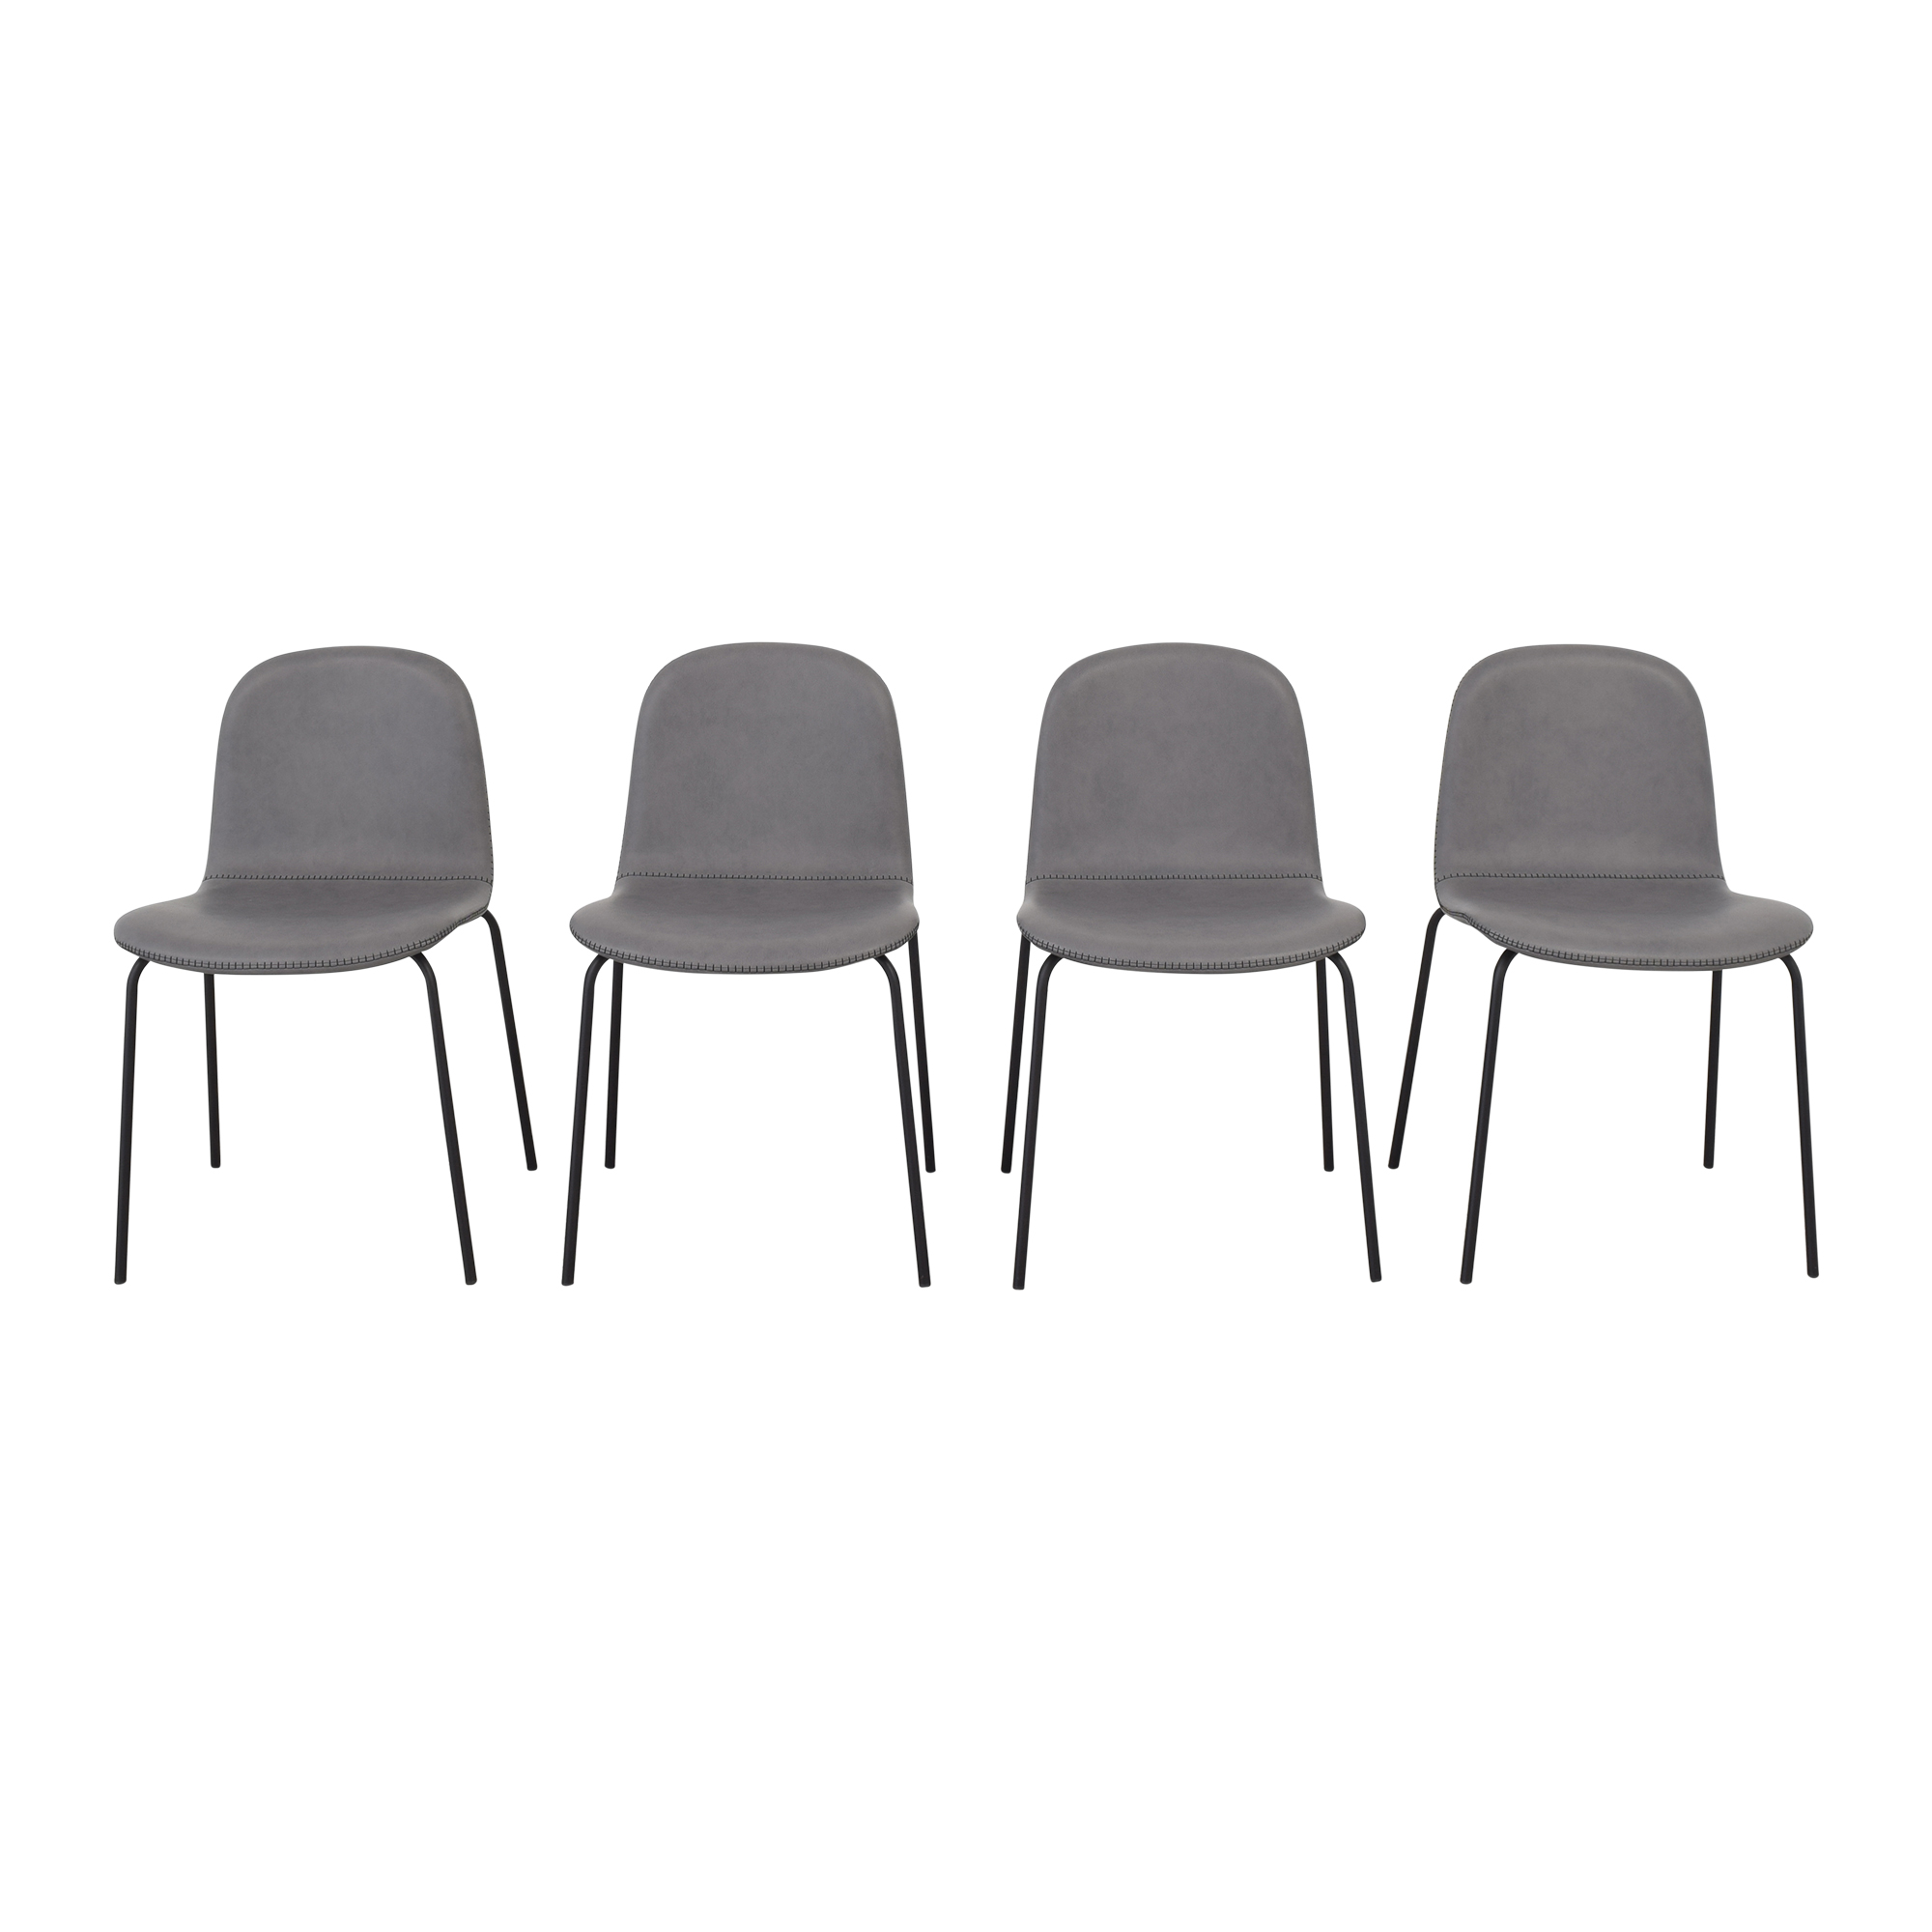 CB2 CB2 Primitivo Grey Chairs Dining Chairs